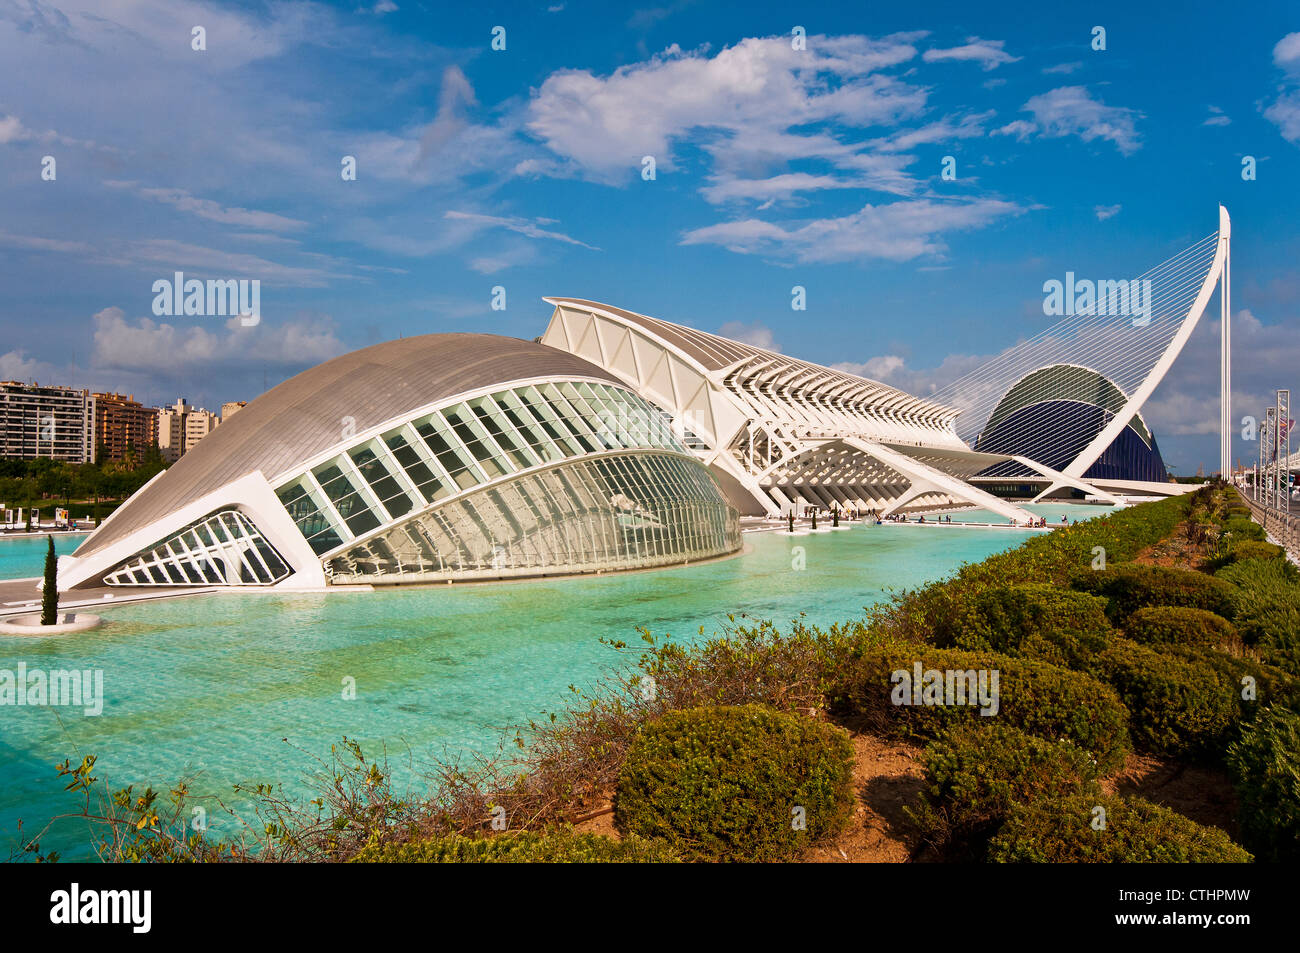 Ciudad de las Artes y las Ciencias (City of Arts and Sciences), Valencia, Spain - Stock Image